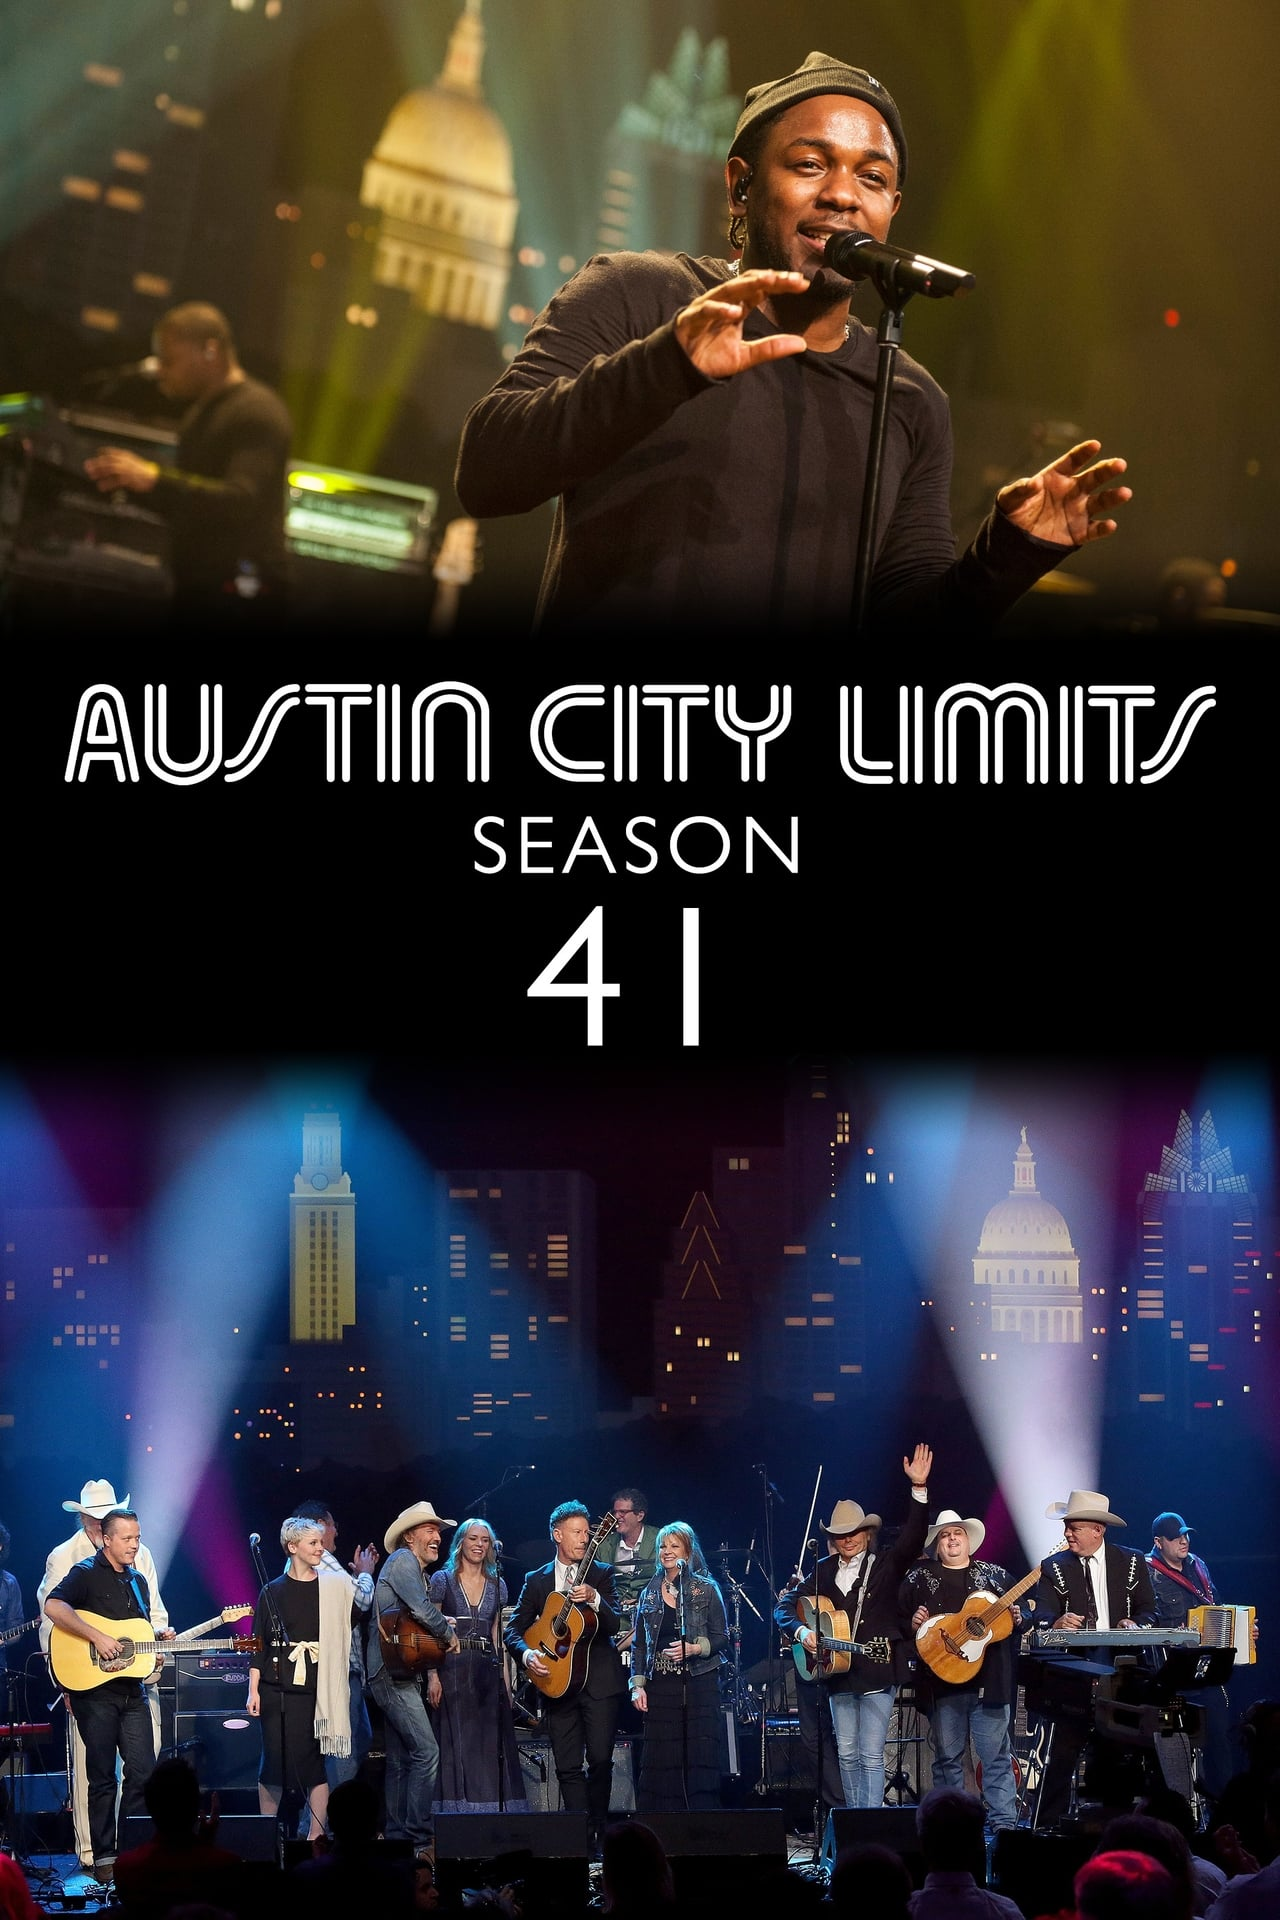 Austin City Limits Season 41 (2015) putlockers cafe